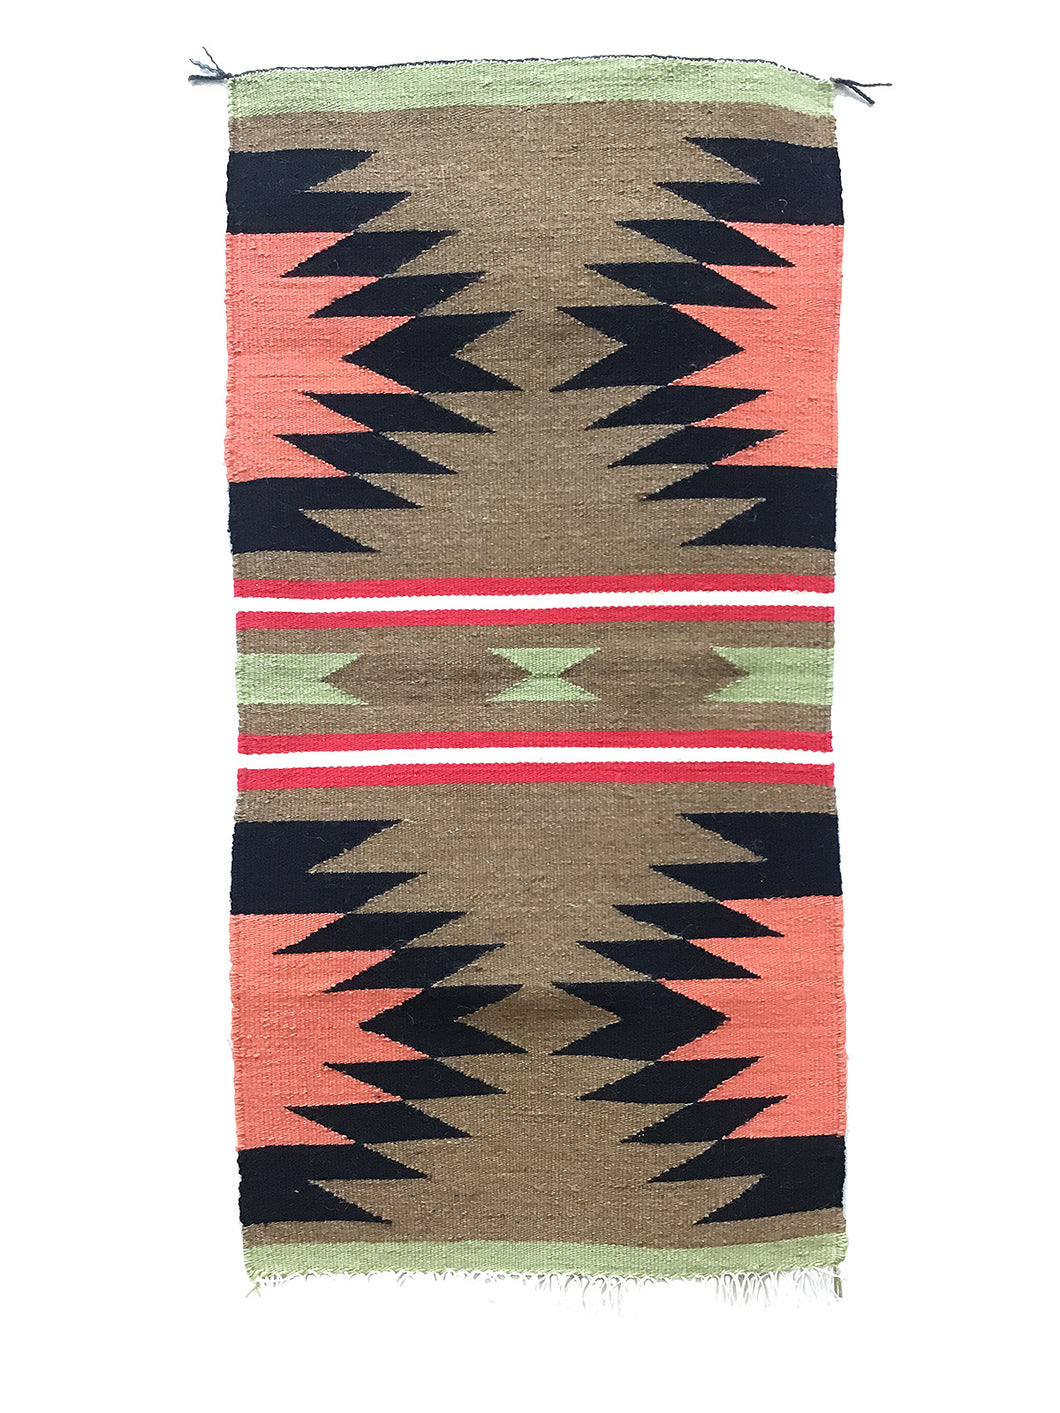 "Gallup Throw Rug, Navajo Handwoven, Wool, Cotton, 38 1/2"" x 19"""